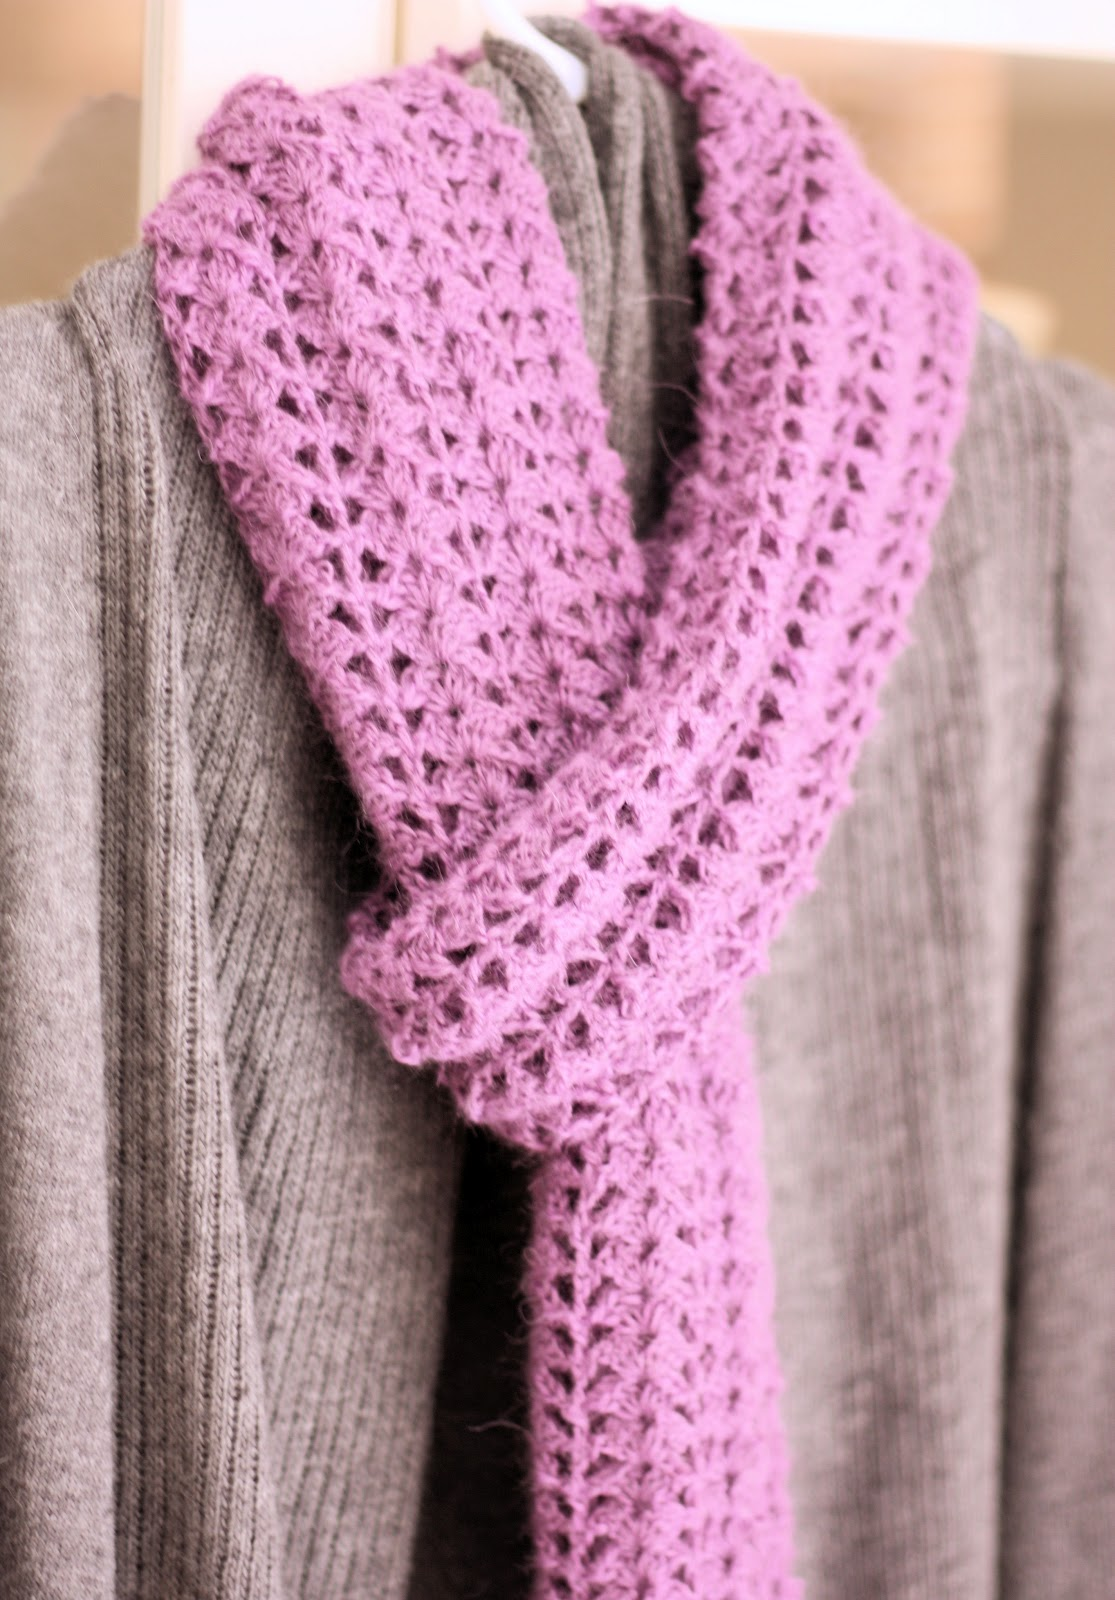 Crocheting Yarn For Beginners : Crocheted Scarf {Free Pattern} - A Spoonful of Sugar